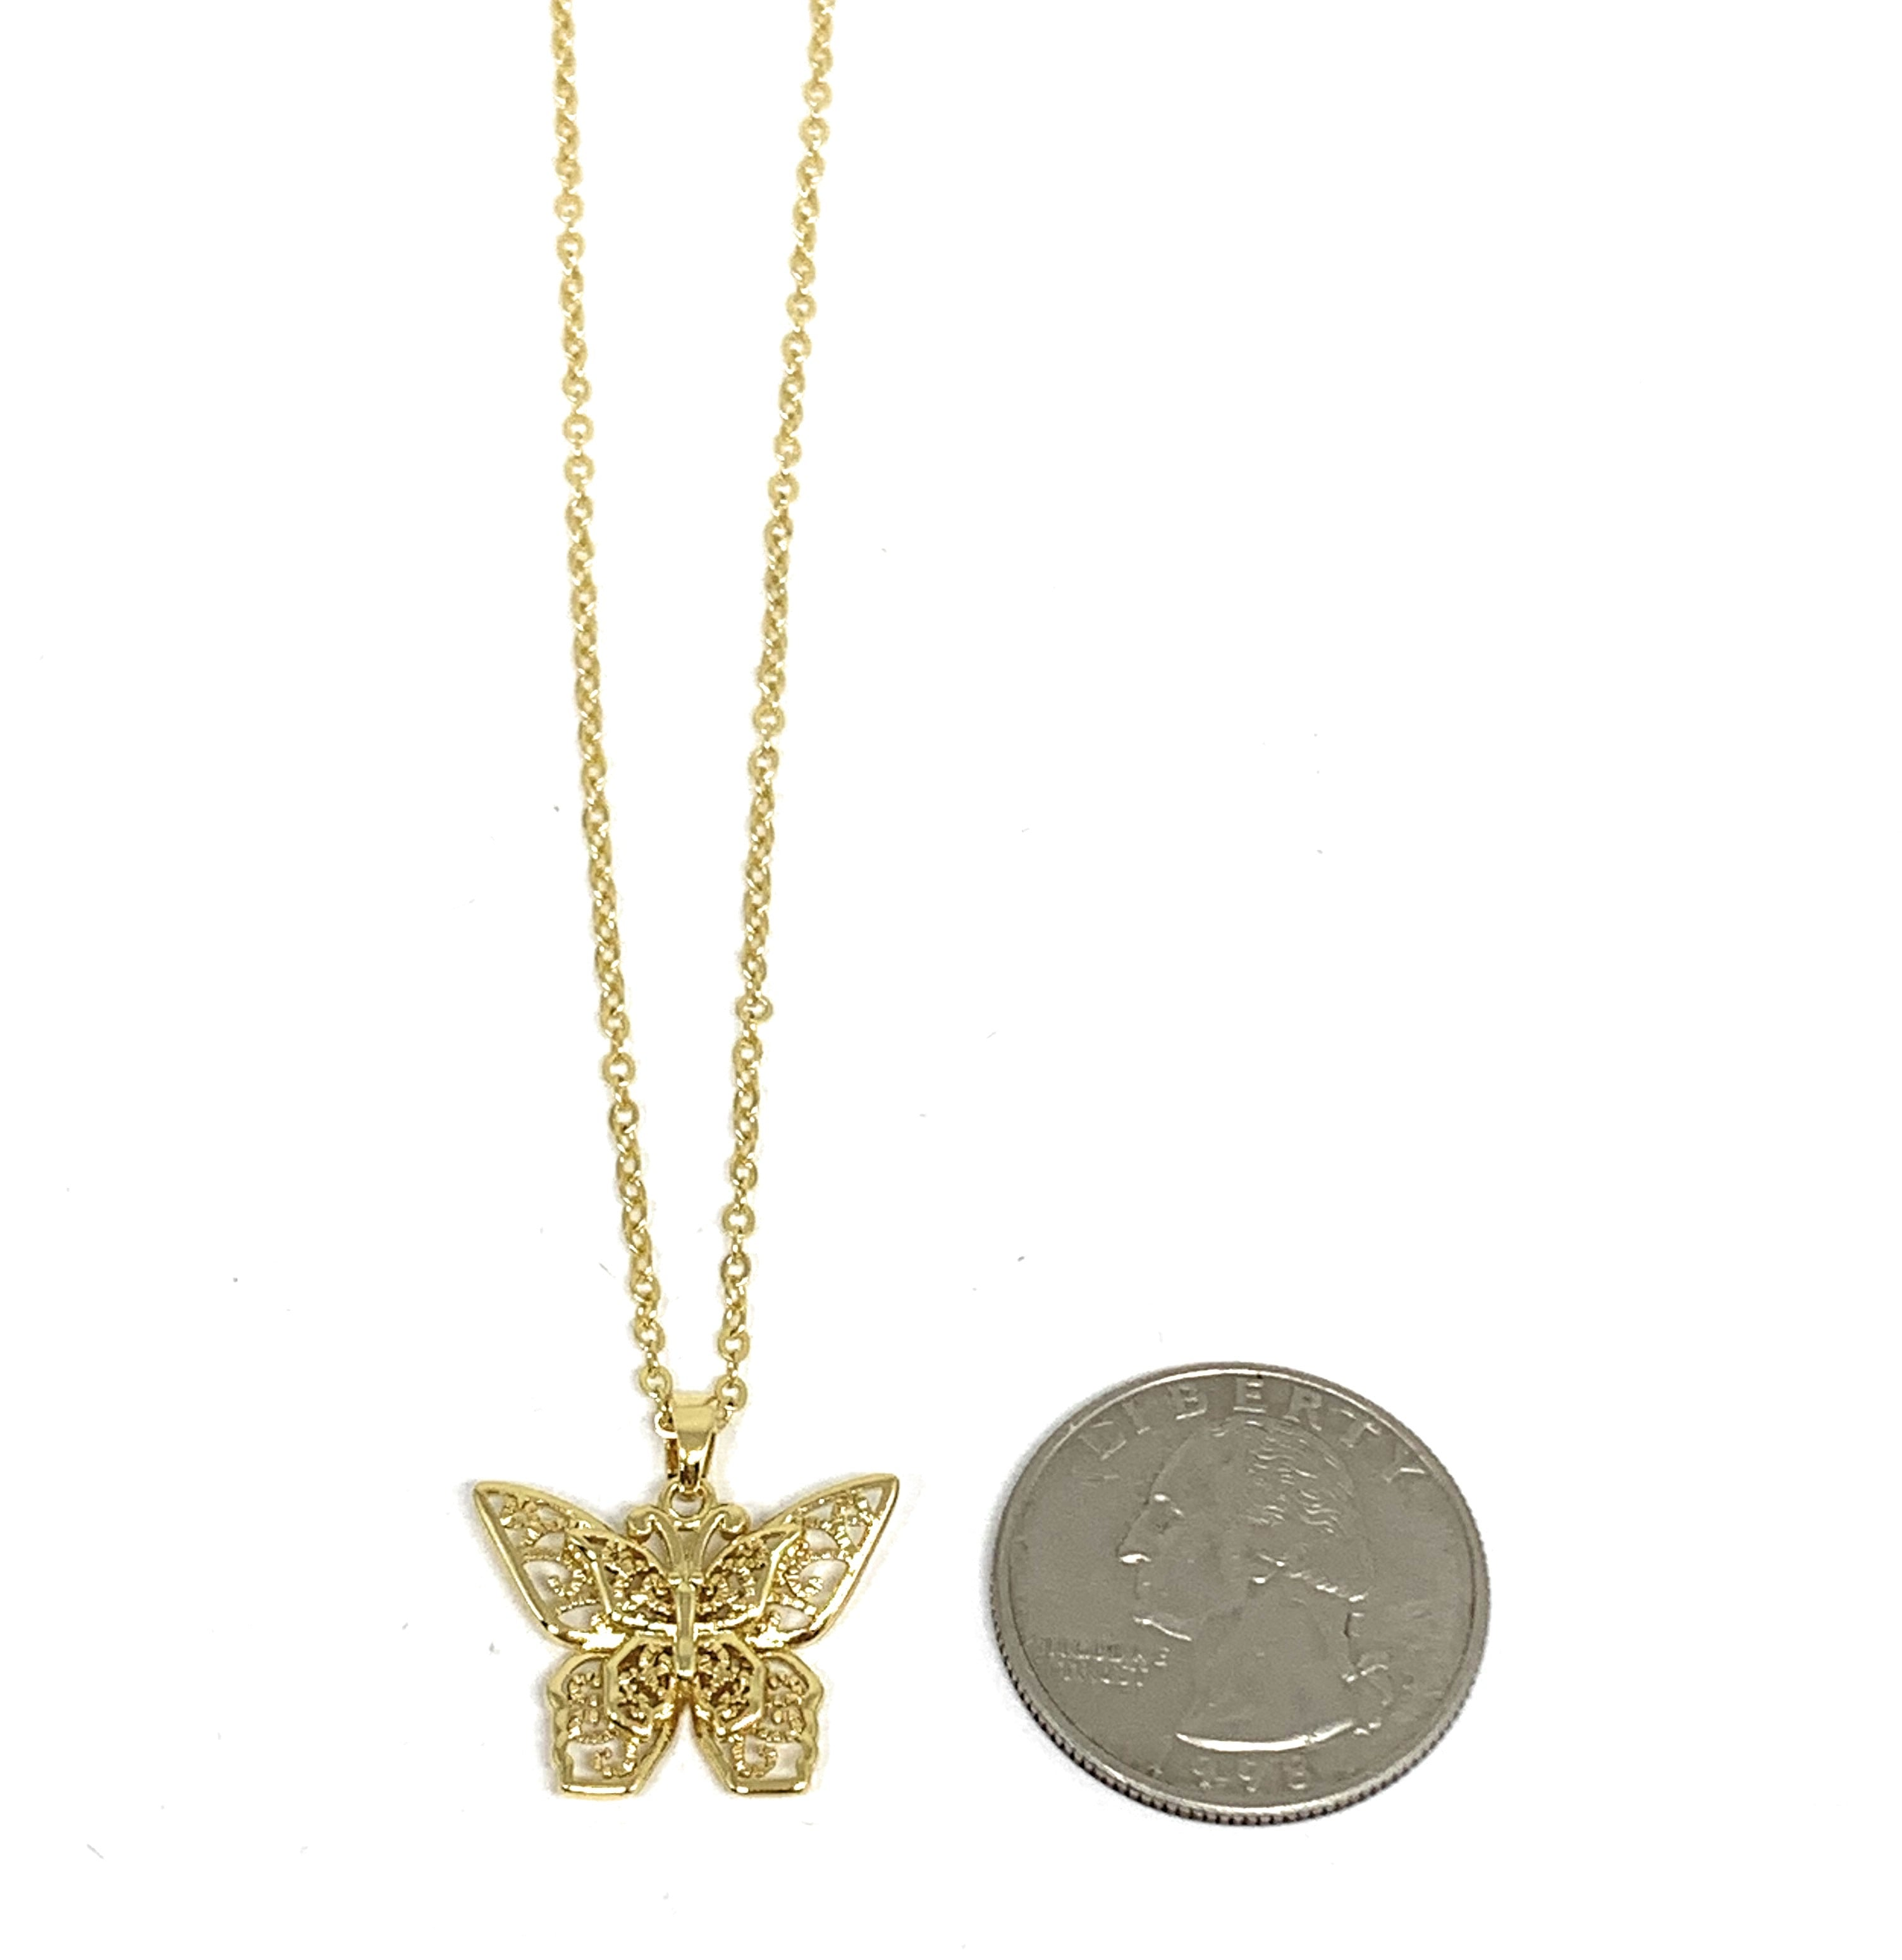 Gold Plated Yellow Butterfly Dainty Pendant Necklace Chain 20""